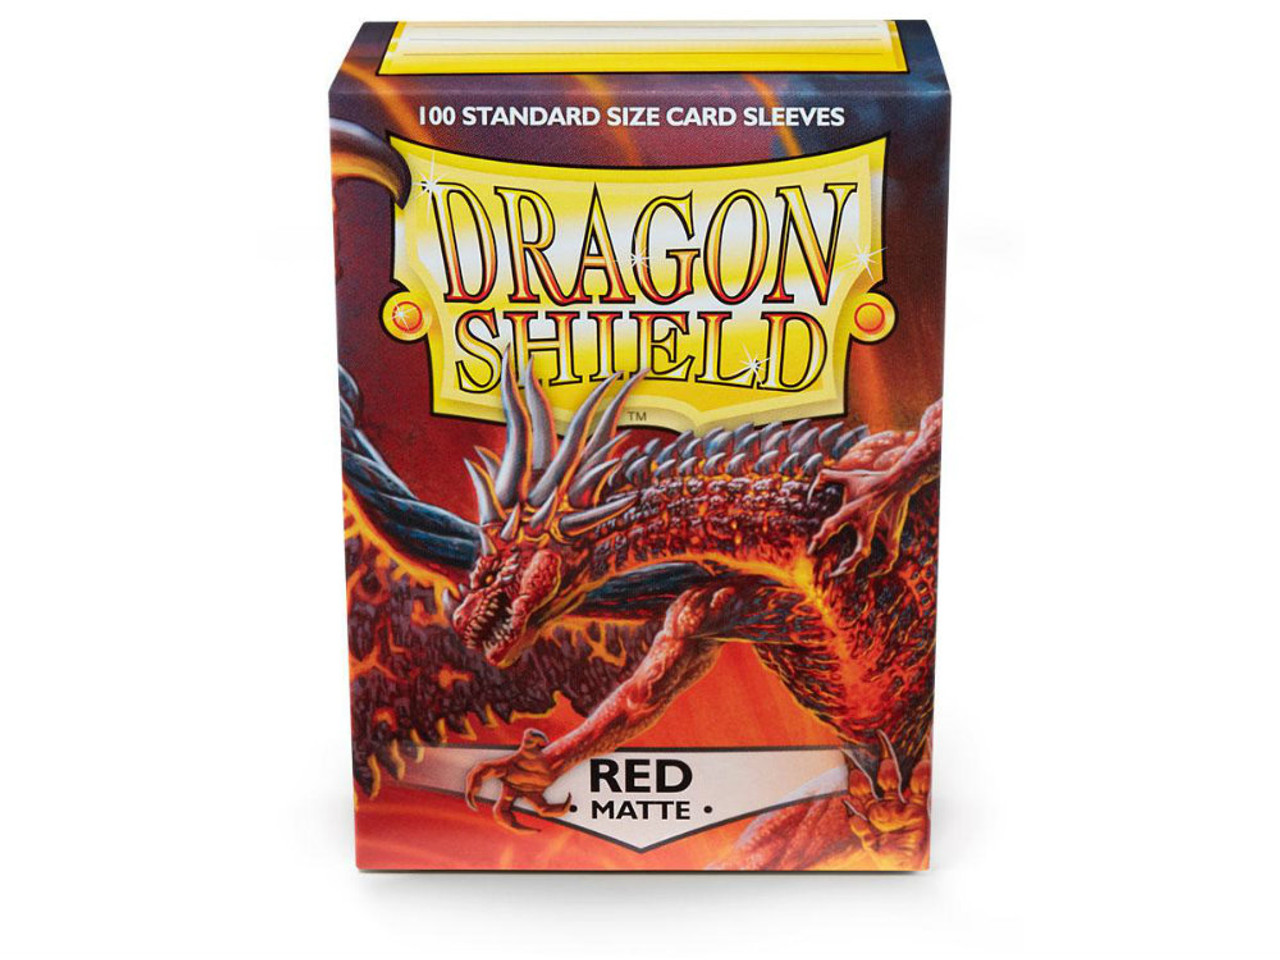 Dragon Shield Card Sleeves: Matte Red (100)